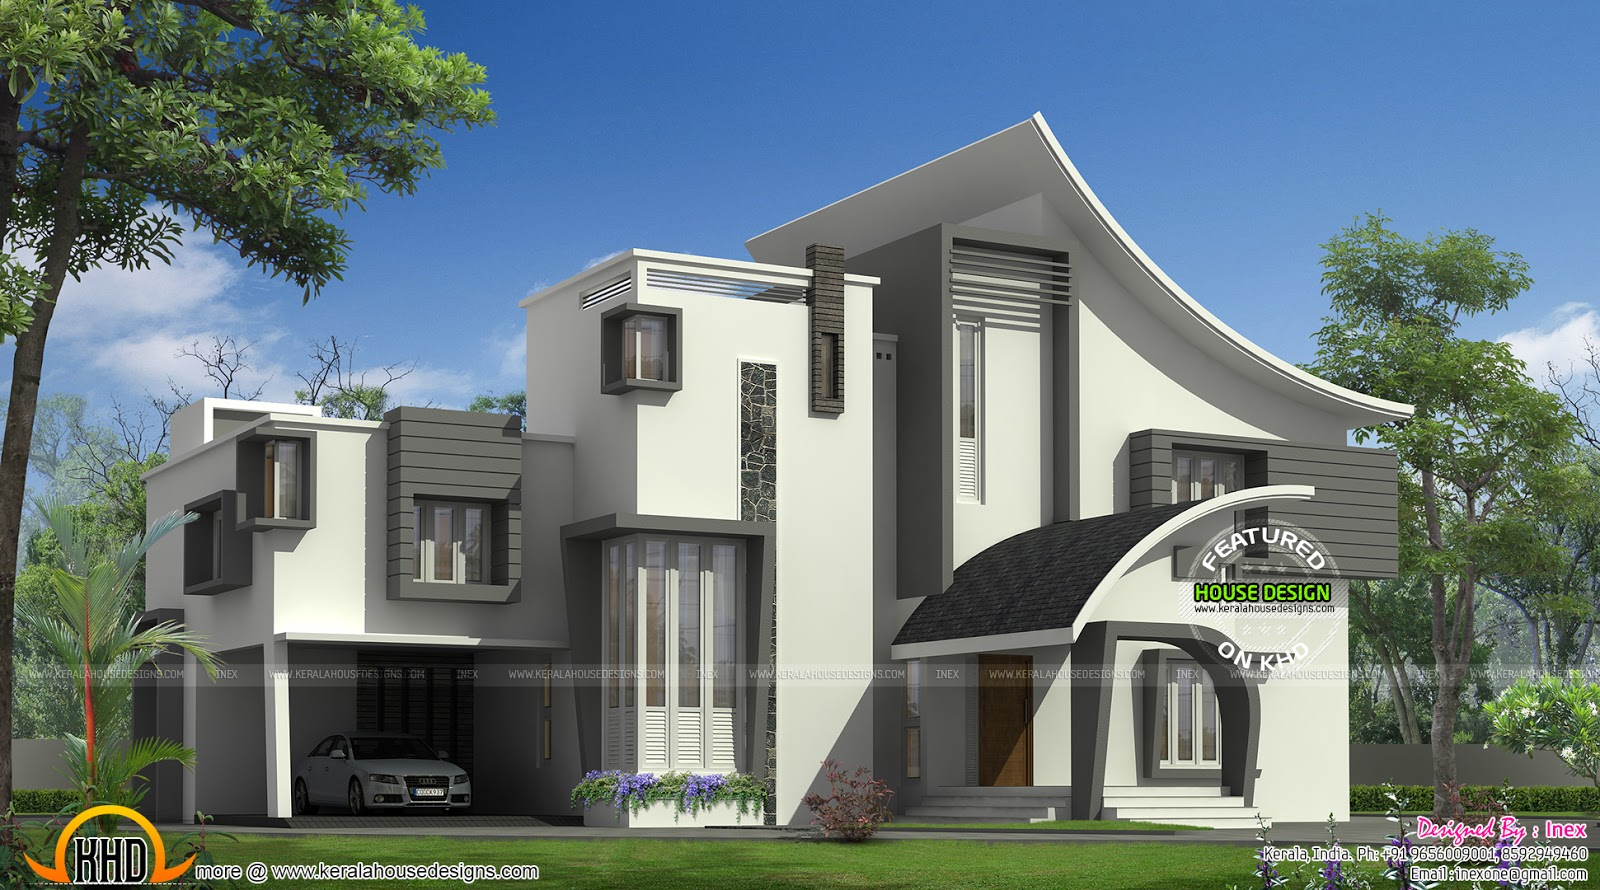 Ultra modern luxury home in kerala kerala home design Ultra modern house